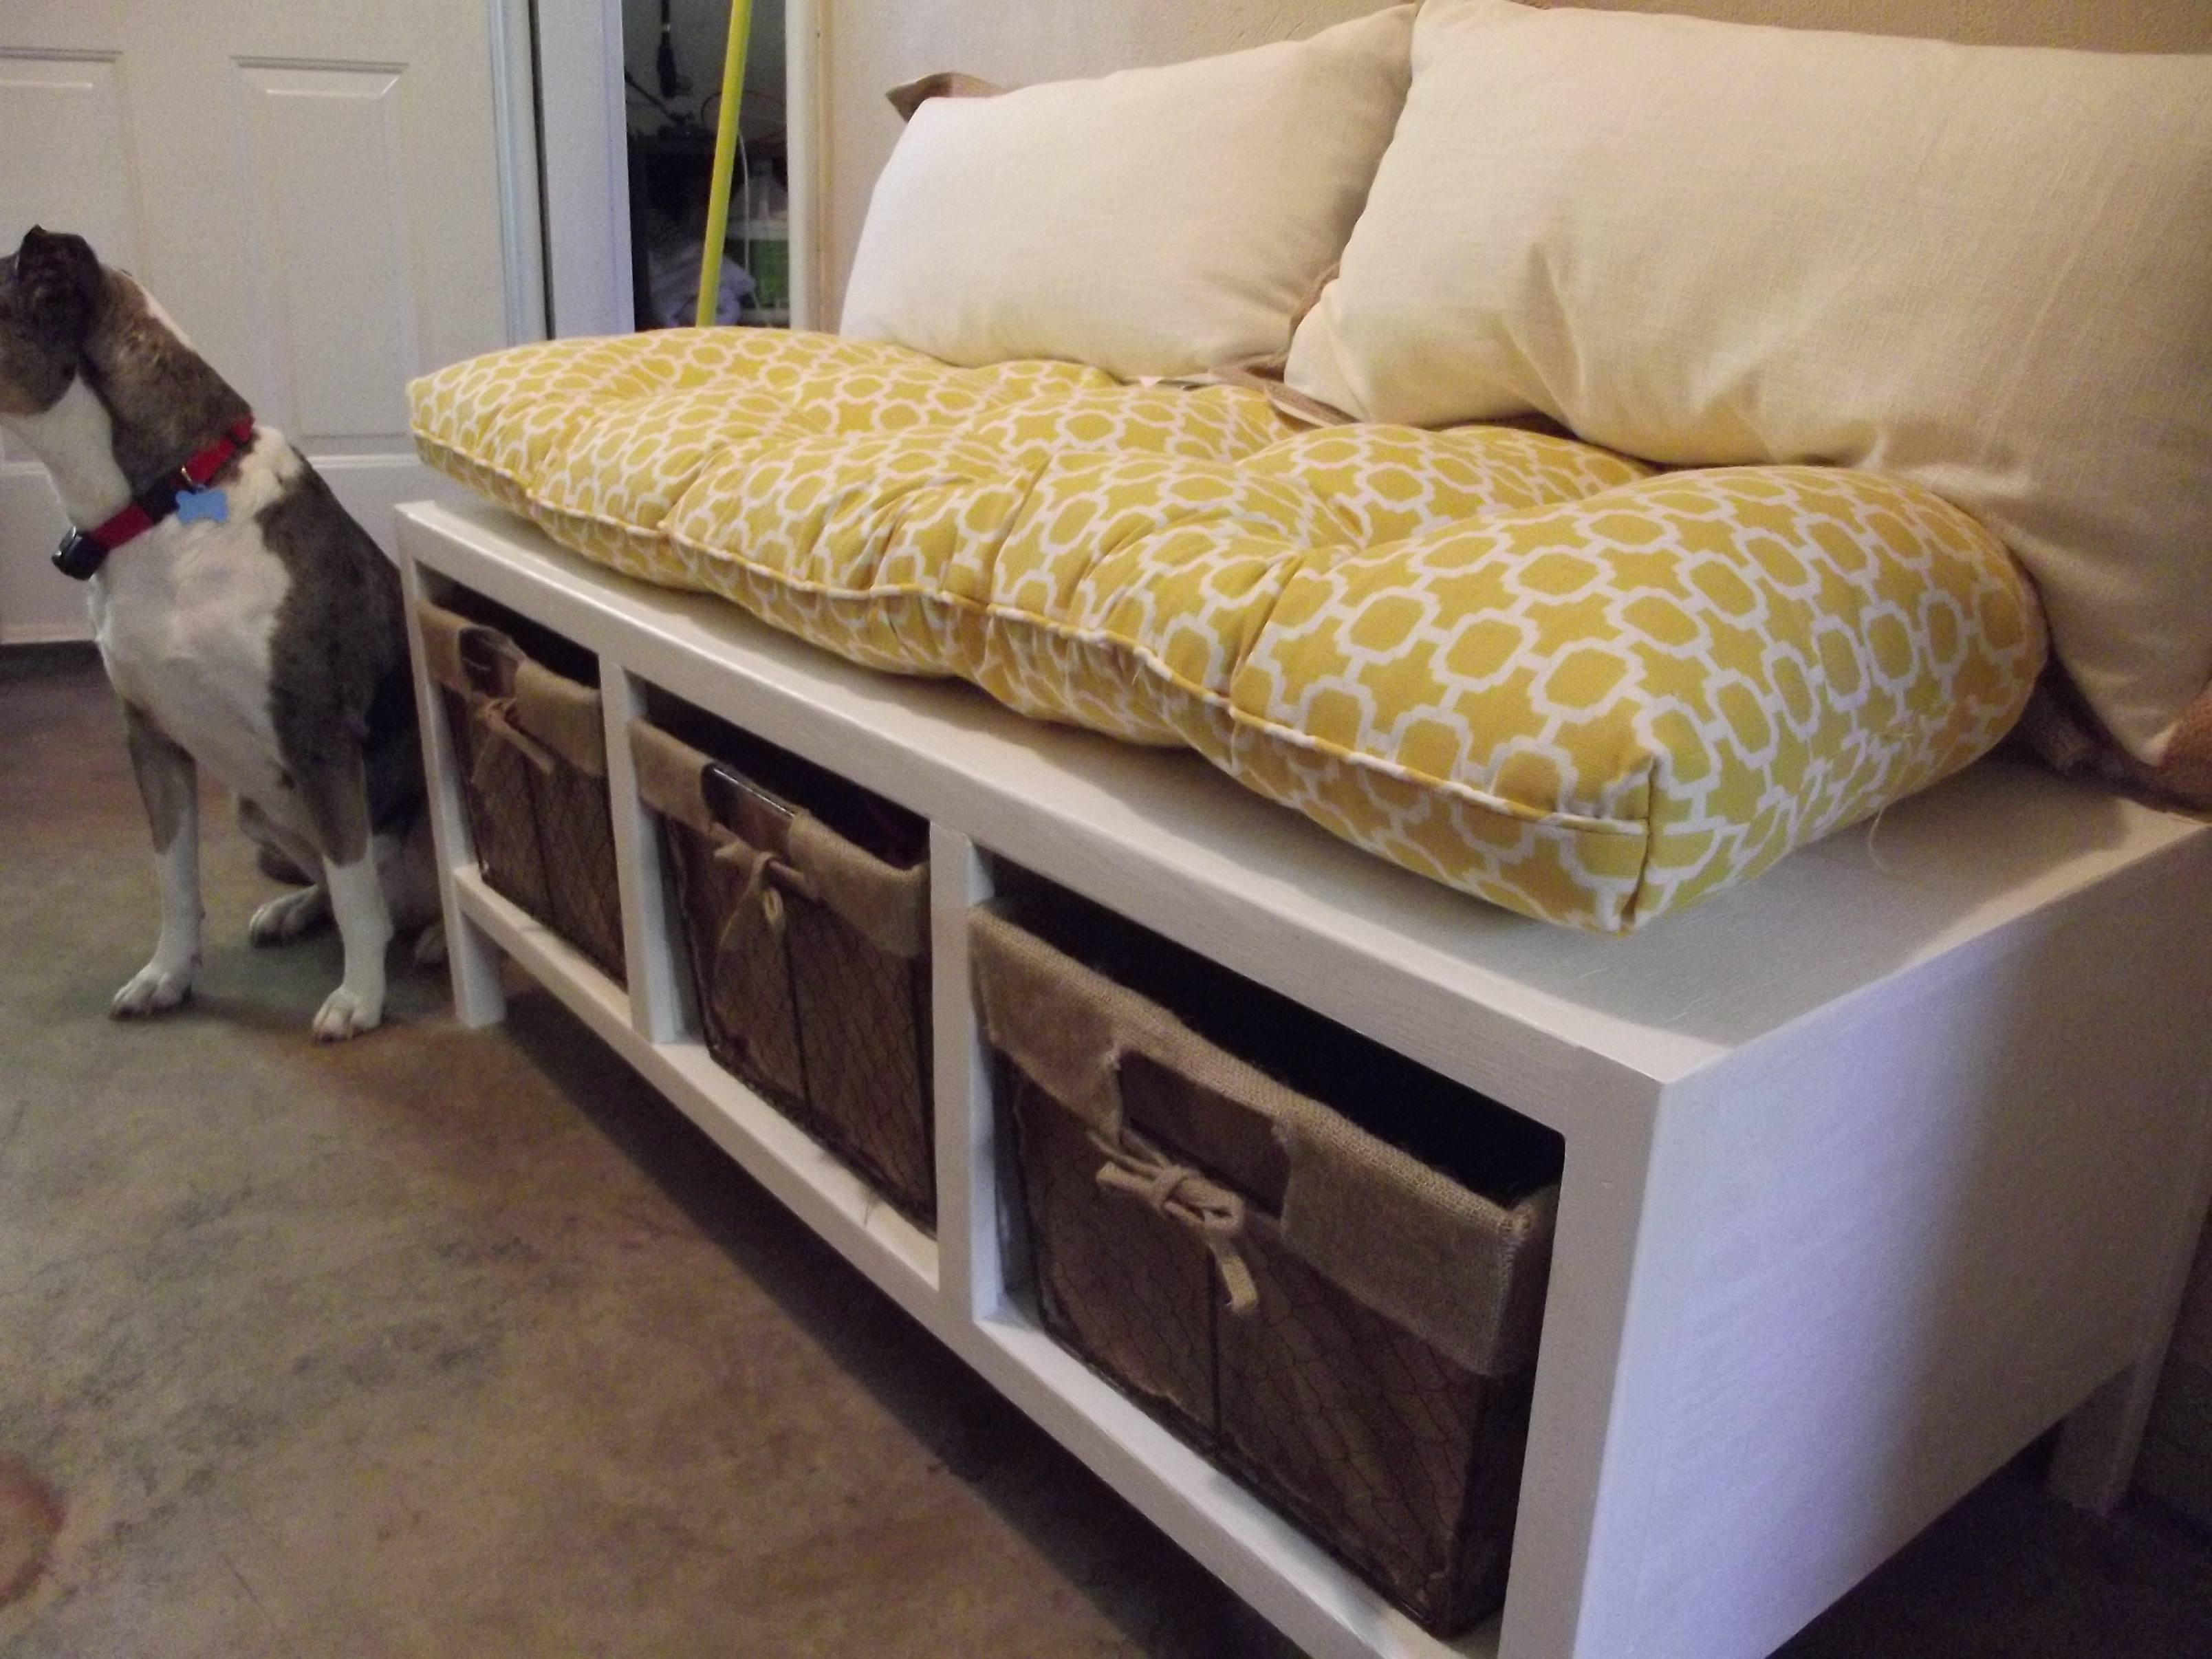 Best ideas about DIY Storage Bench . Save or Pin Ana White Now.